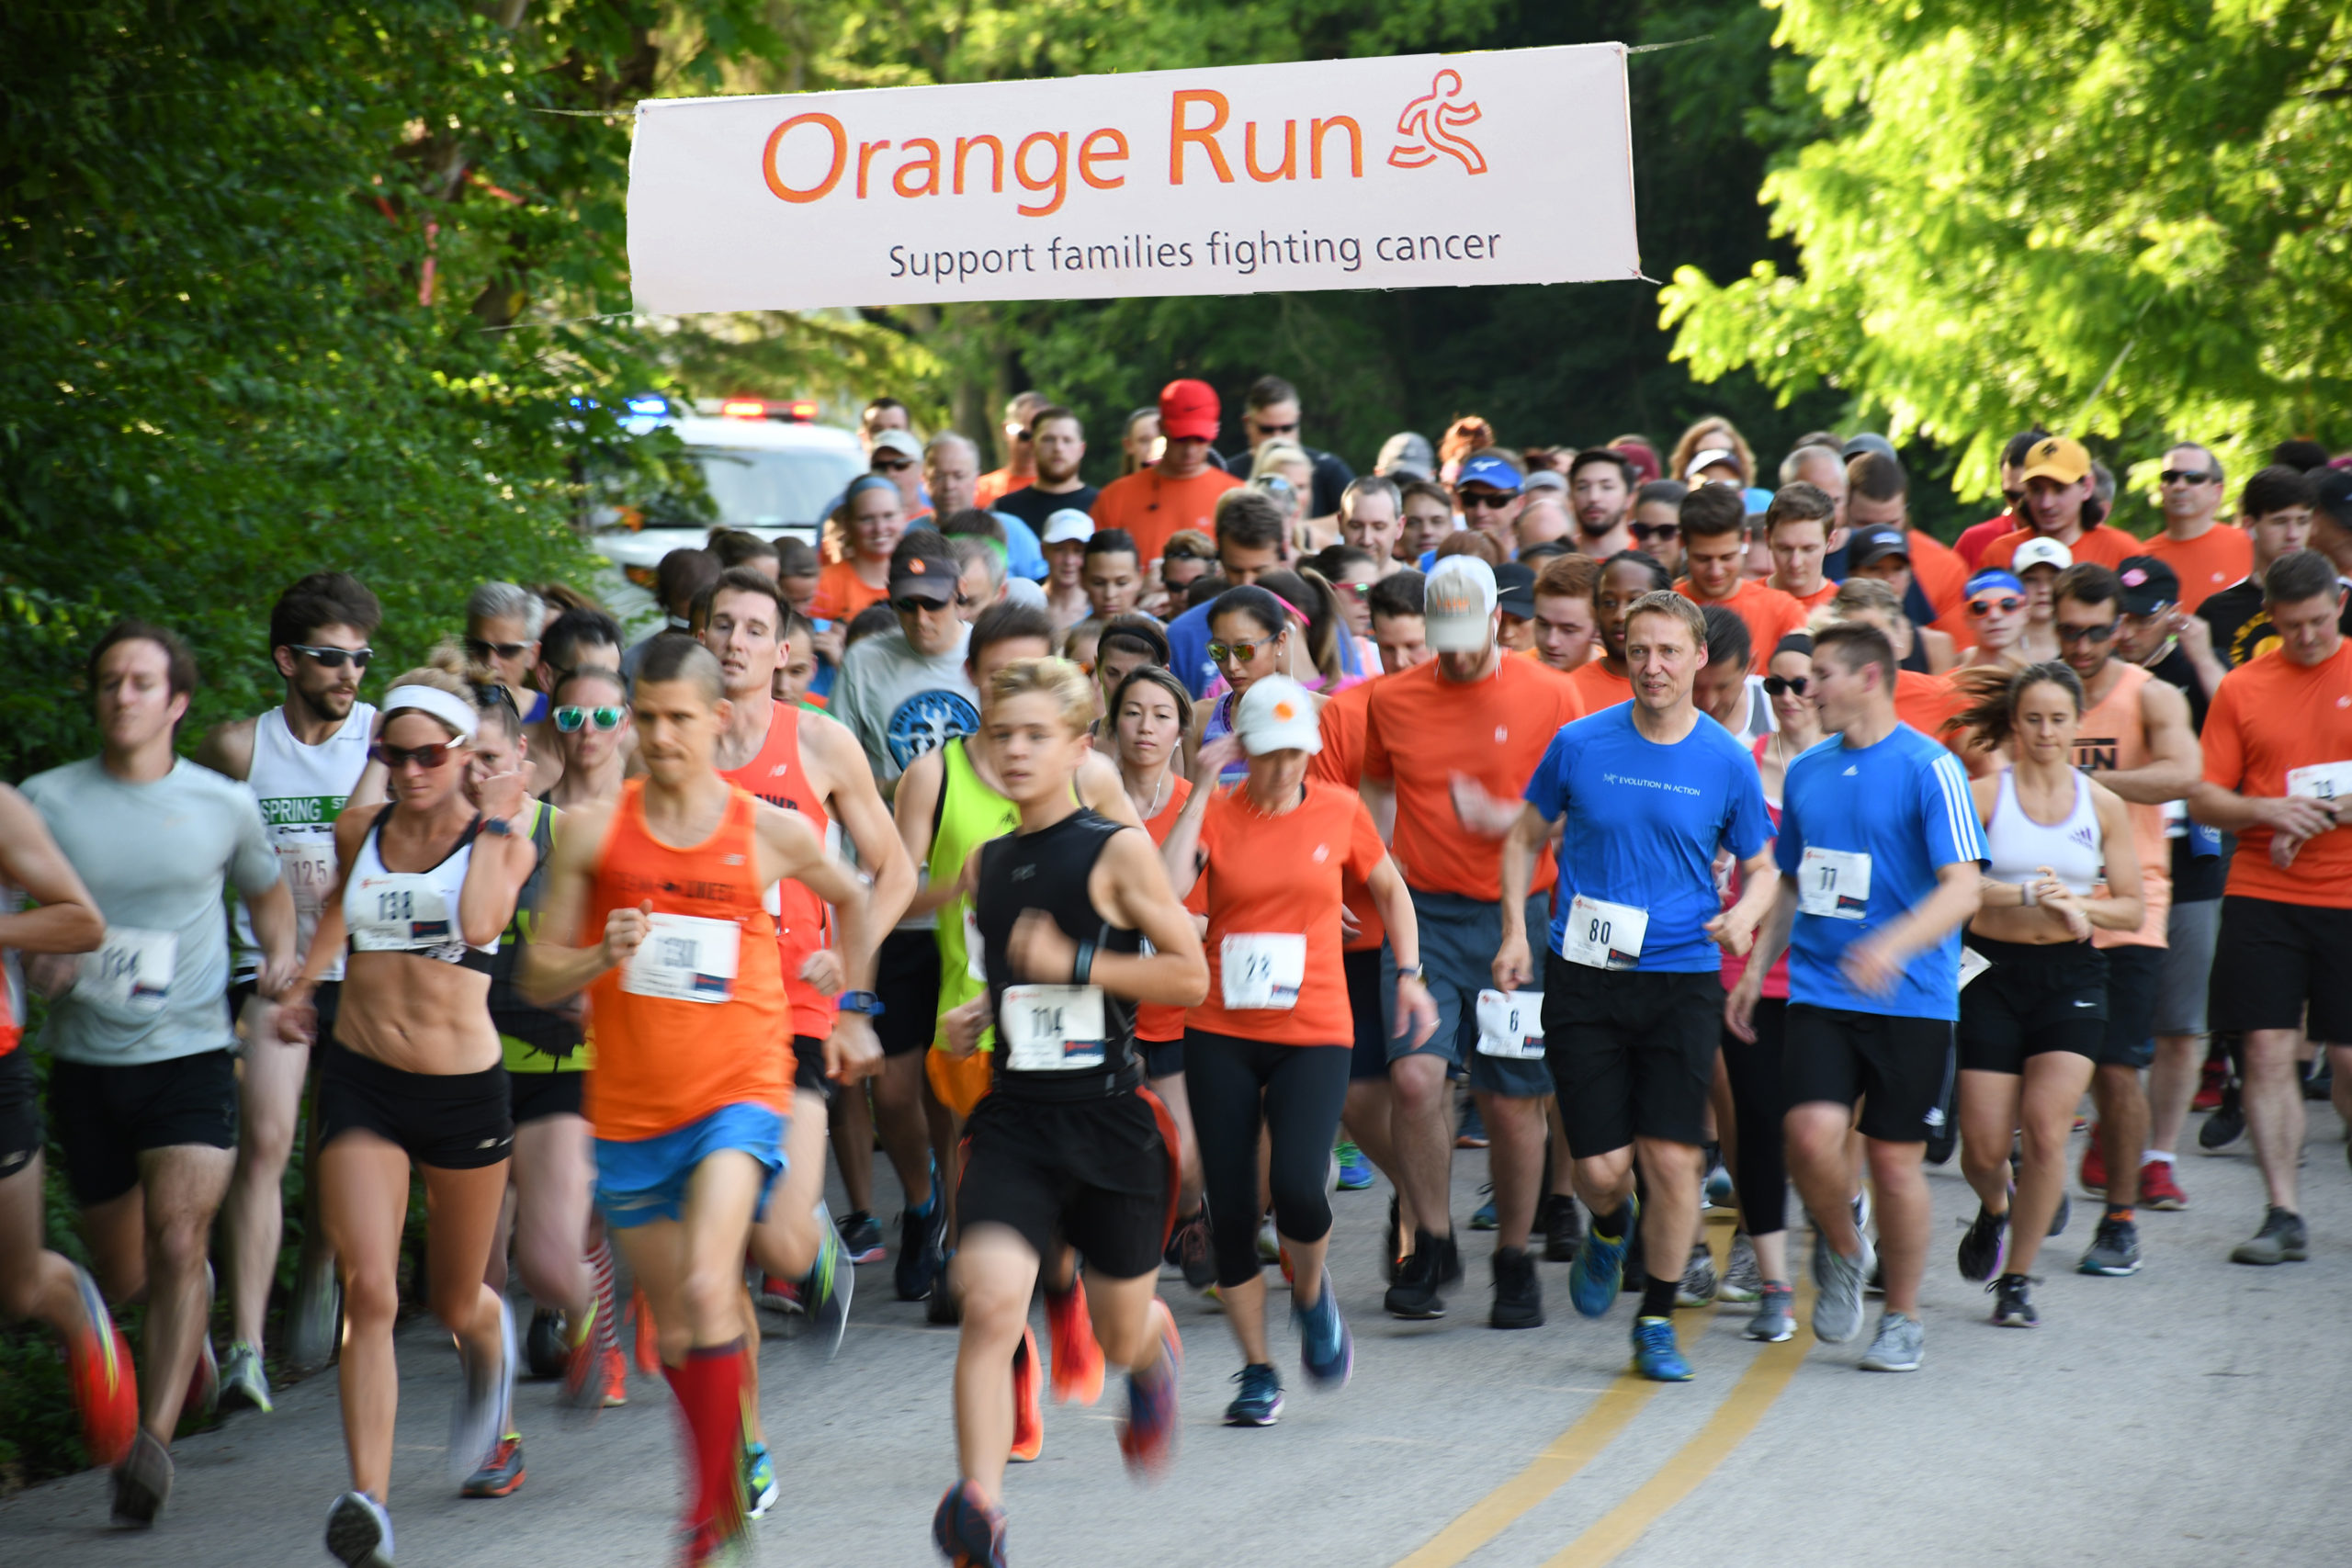 Seventh Annual Orange Run Raises $21,000 for Cancer Research, Support Services